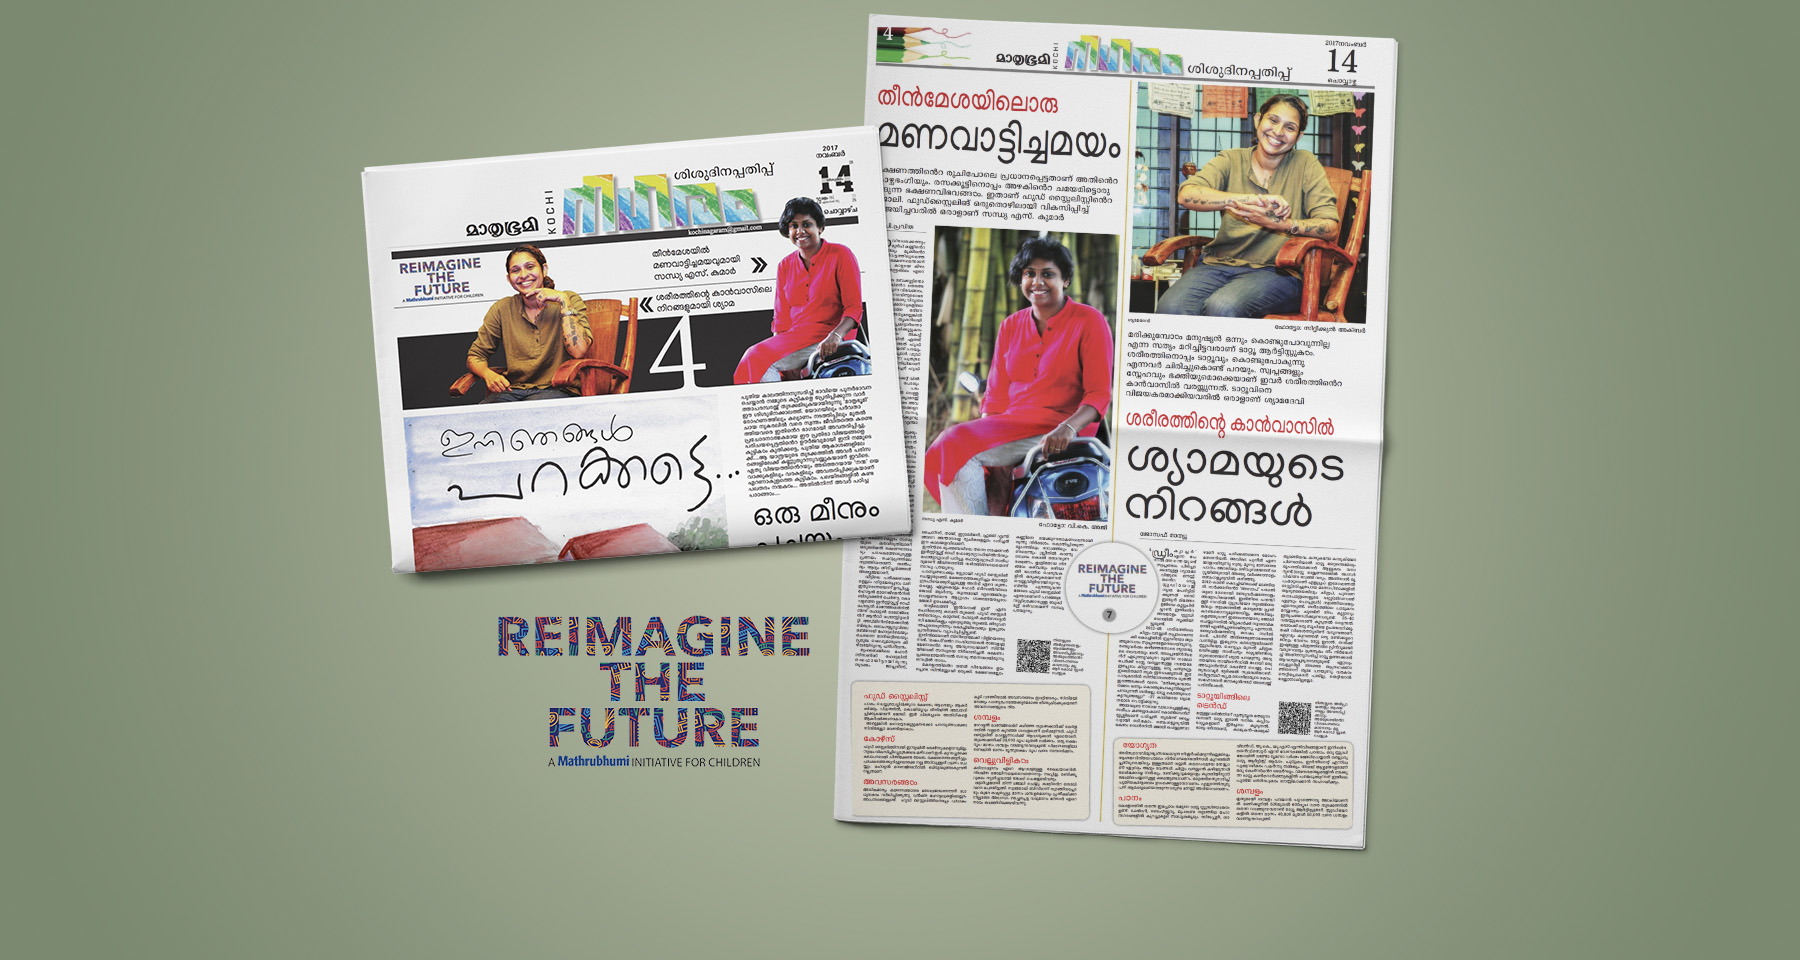 Mathrubhumi future careers campaign engages millions of youth, parents